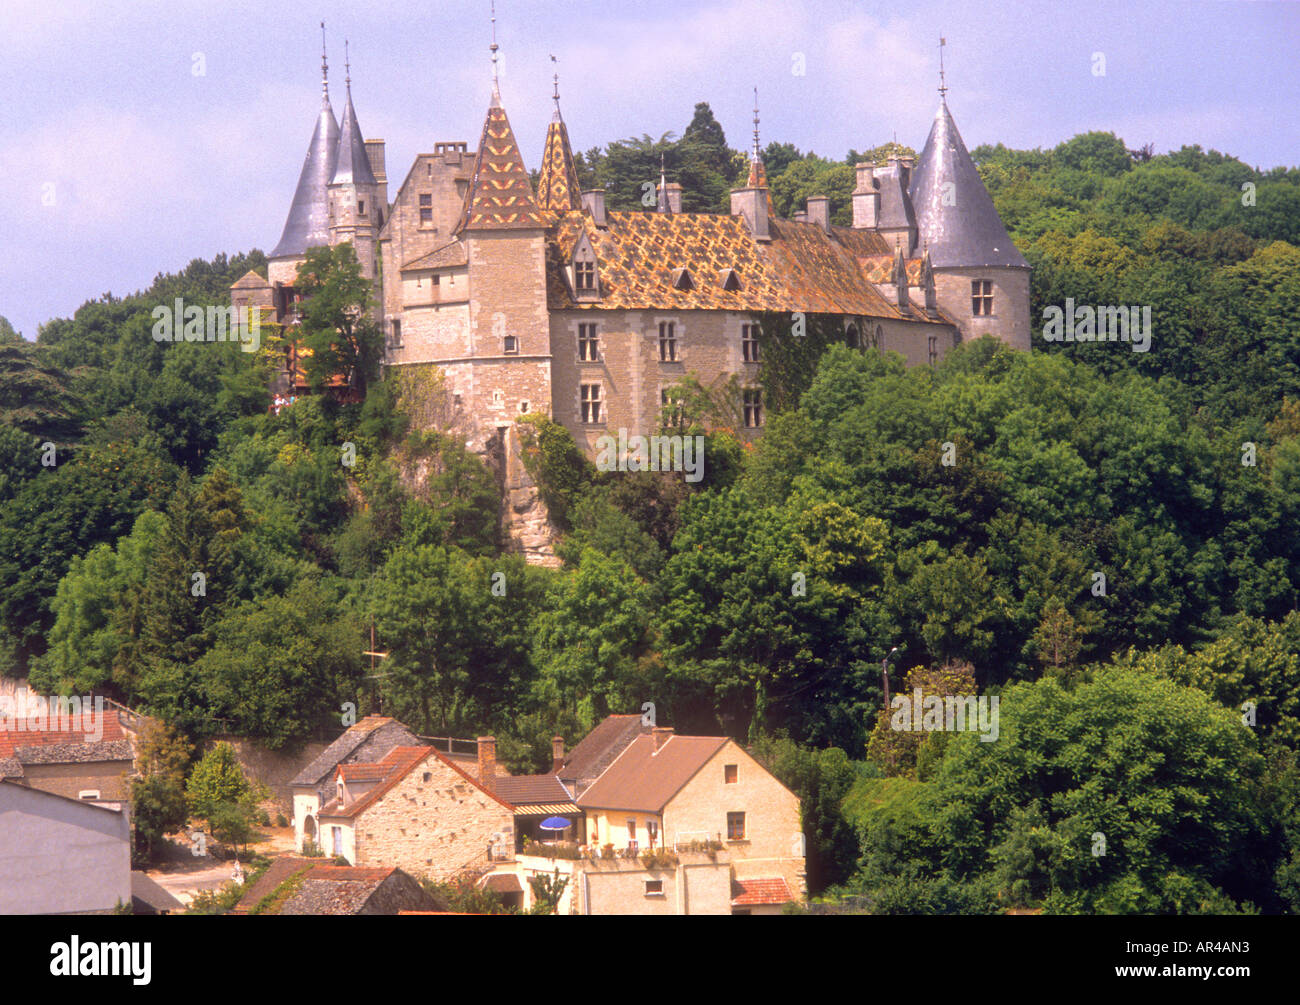 Typically coloured traditional patterned,tiled roof in Beaune,France - Stock Image